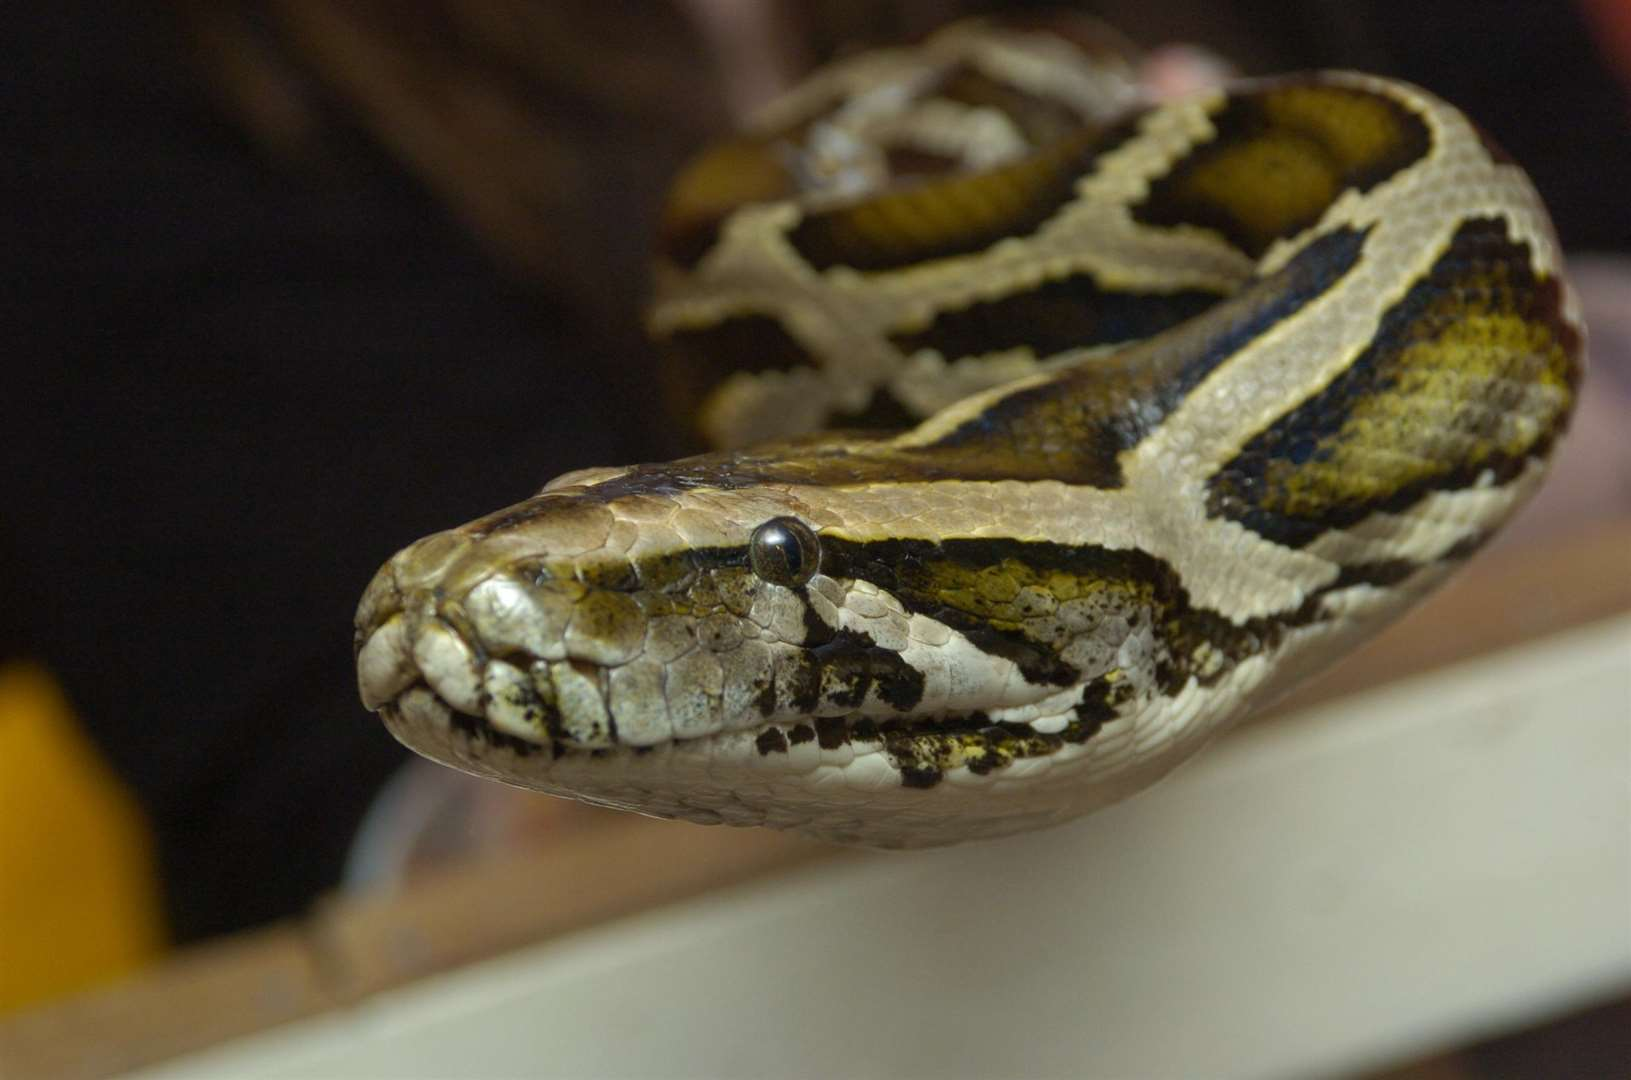 Image of a python, which the missing snake is thought to be. Library picture